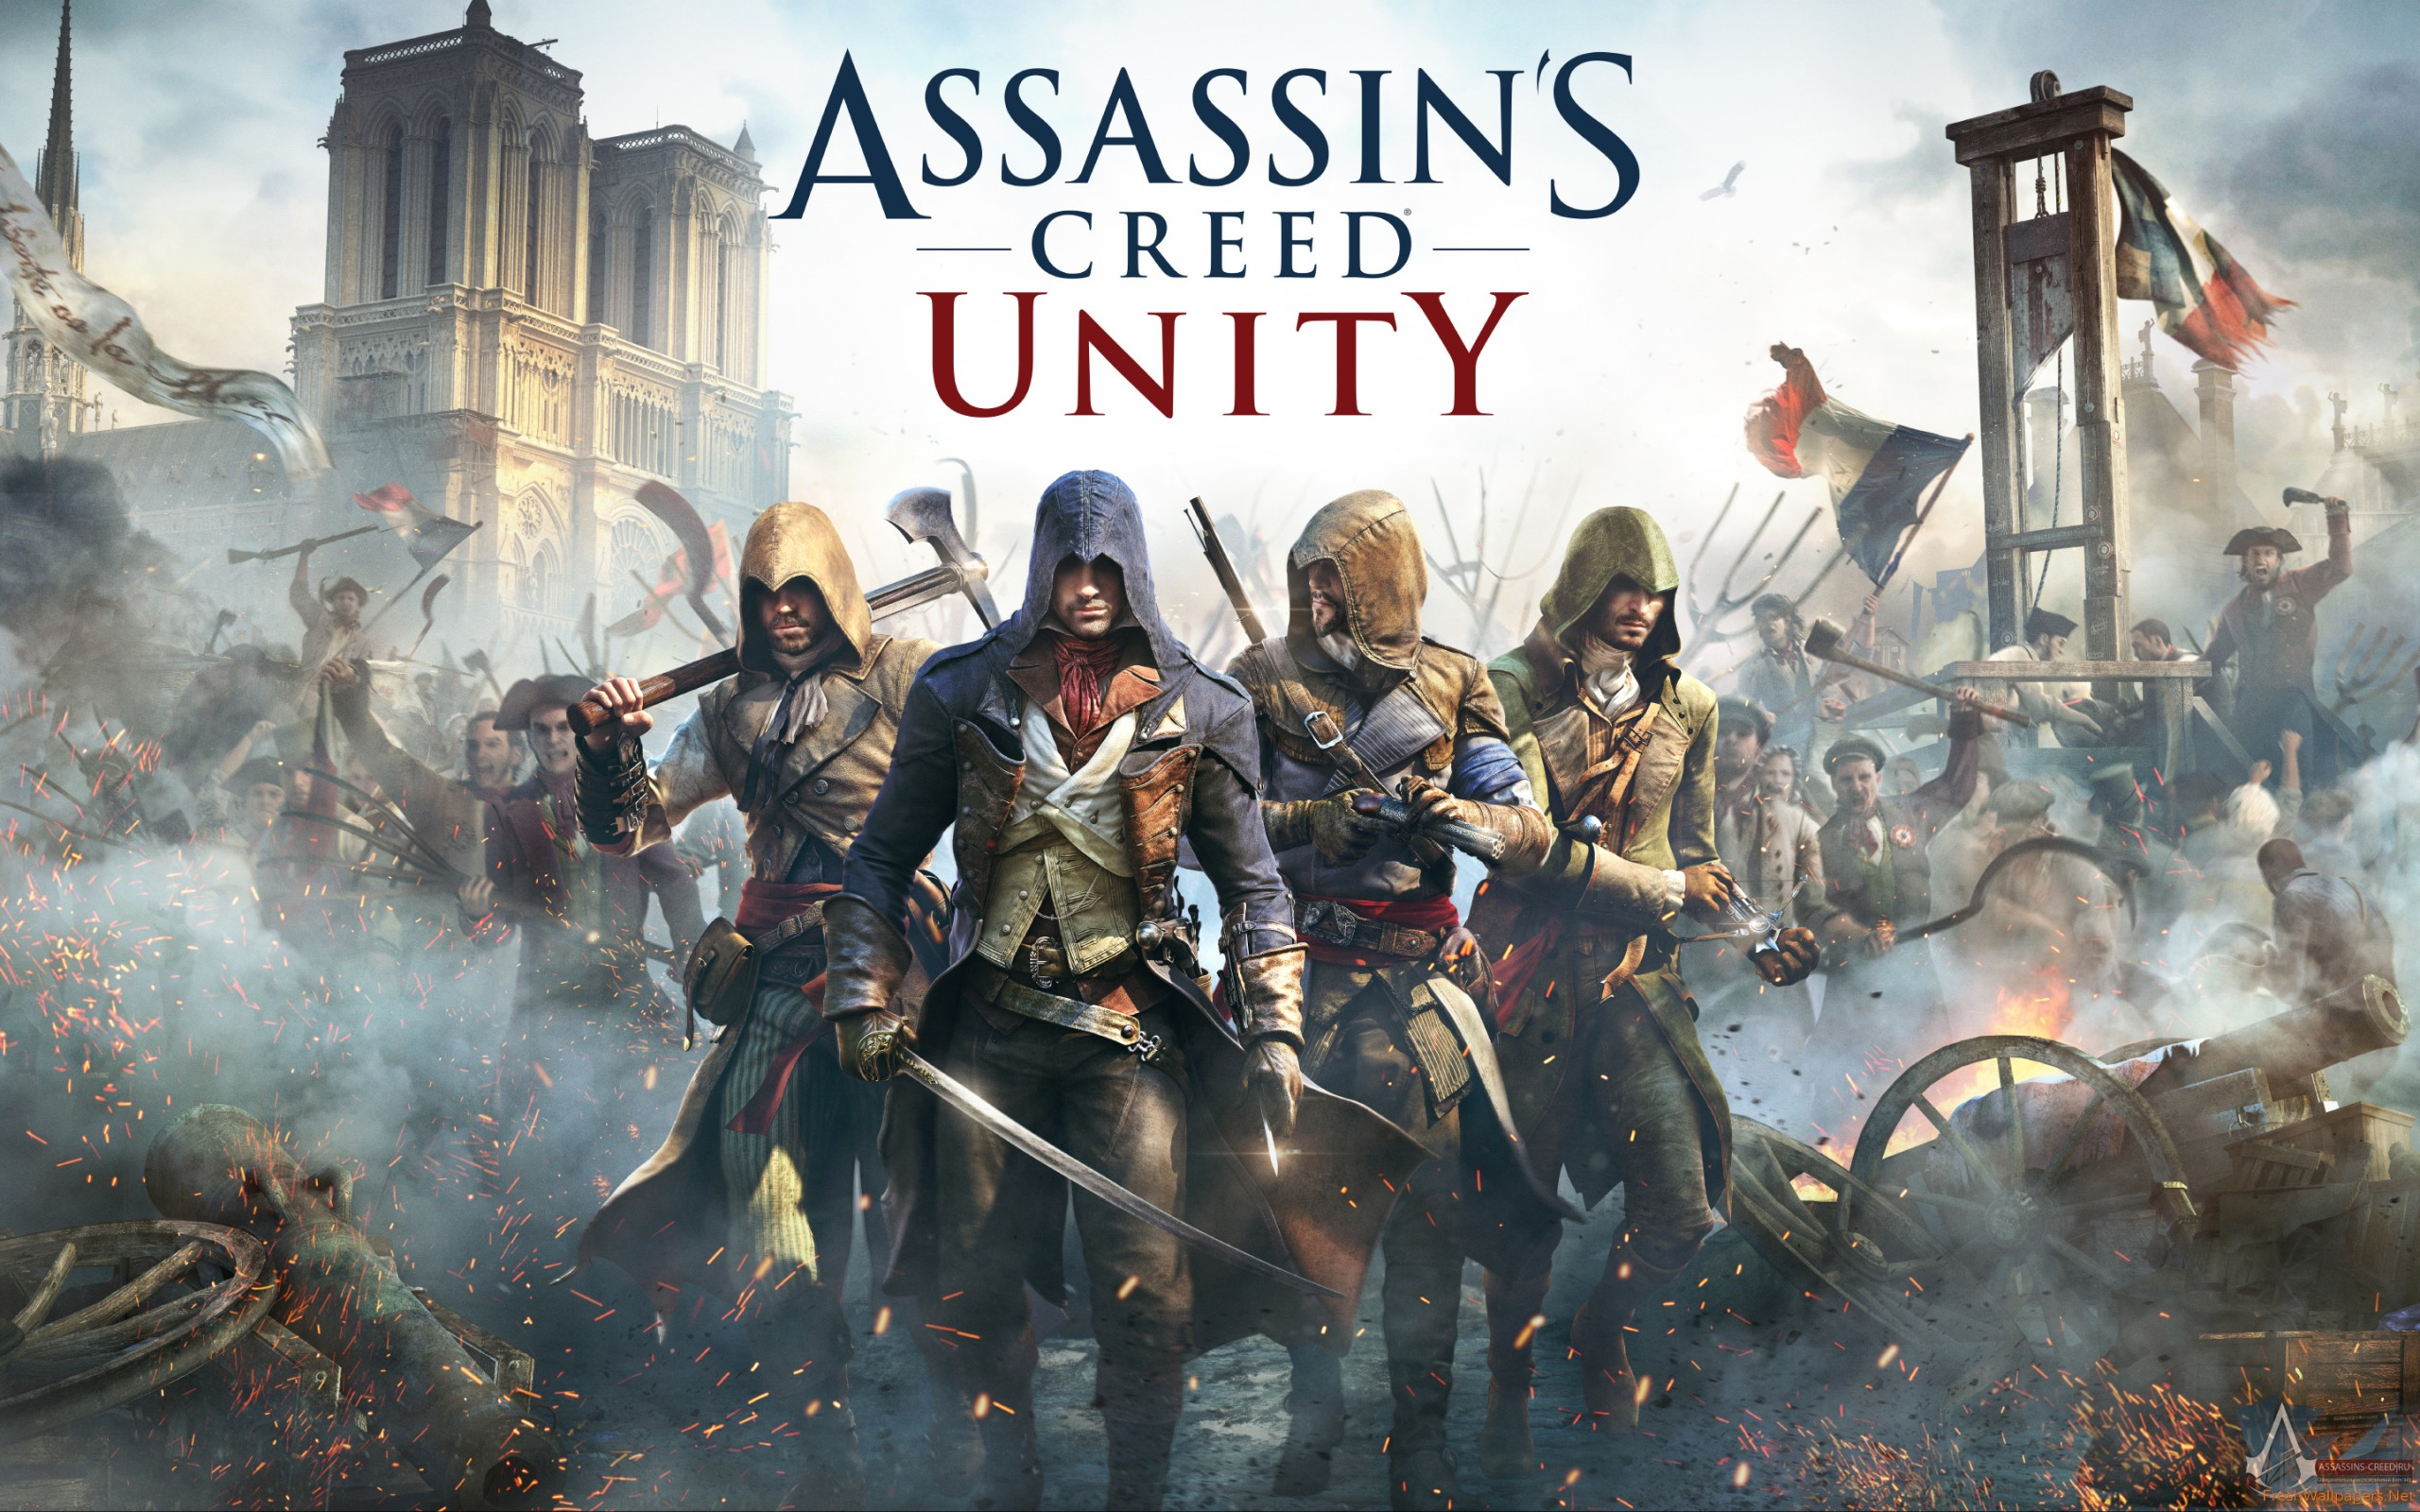 Assassins Creed Unity Wallpaper Ipad   wallpaper 2560x1600